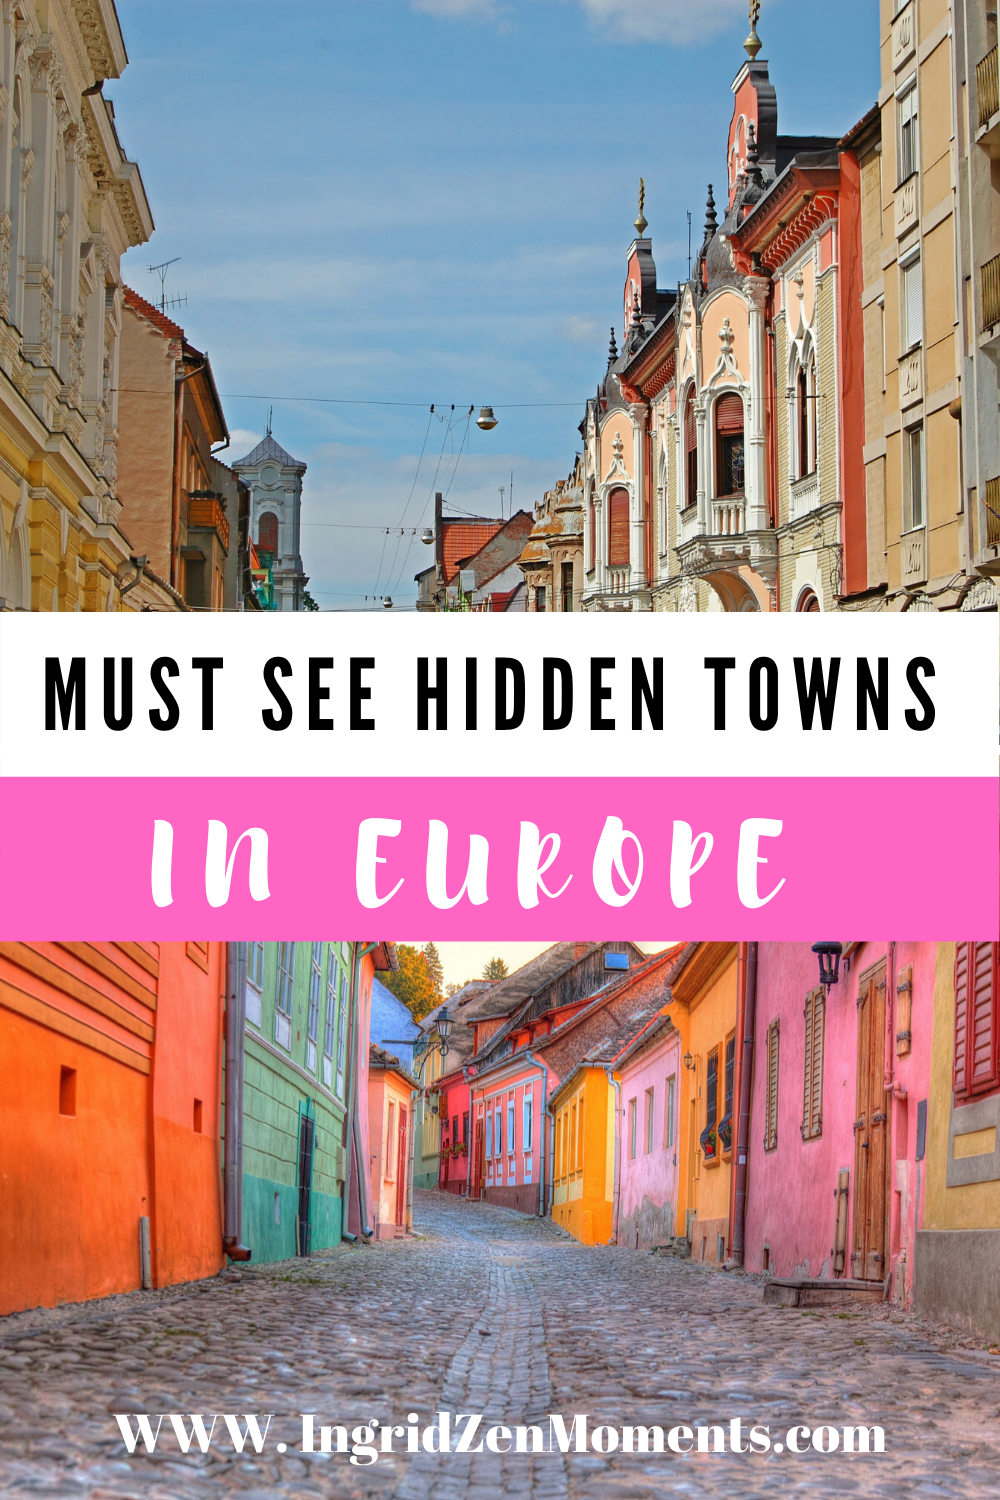 Less known places to visit in Europe